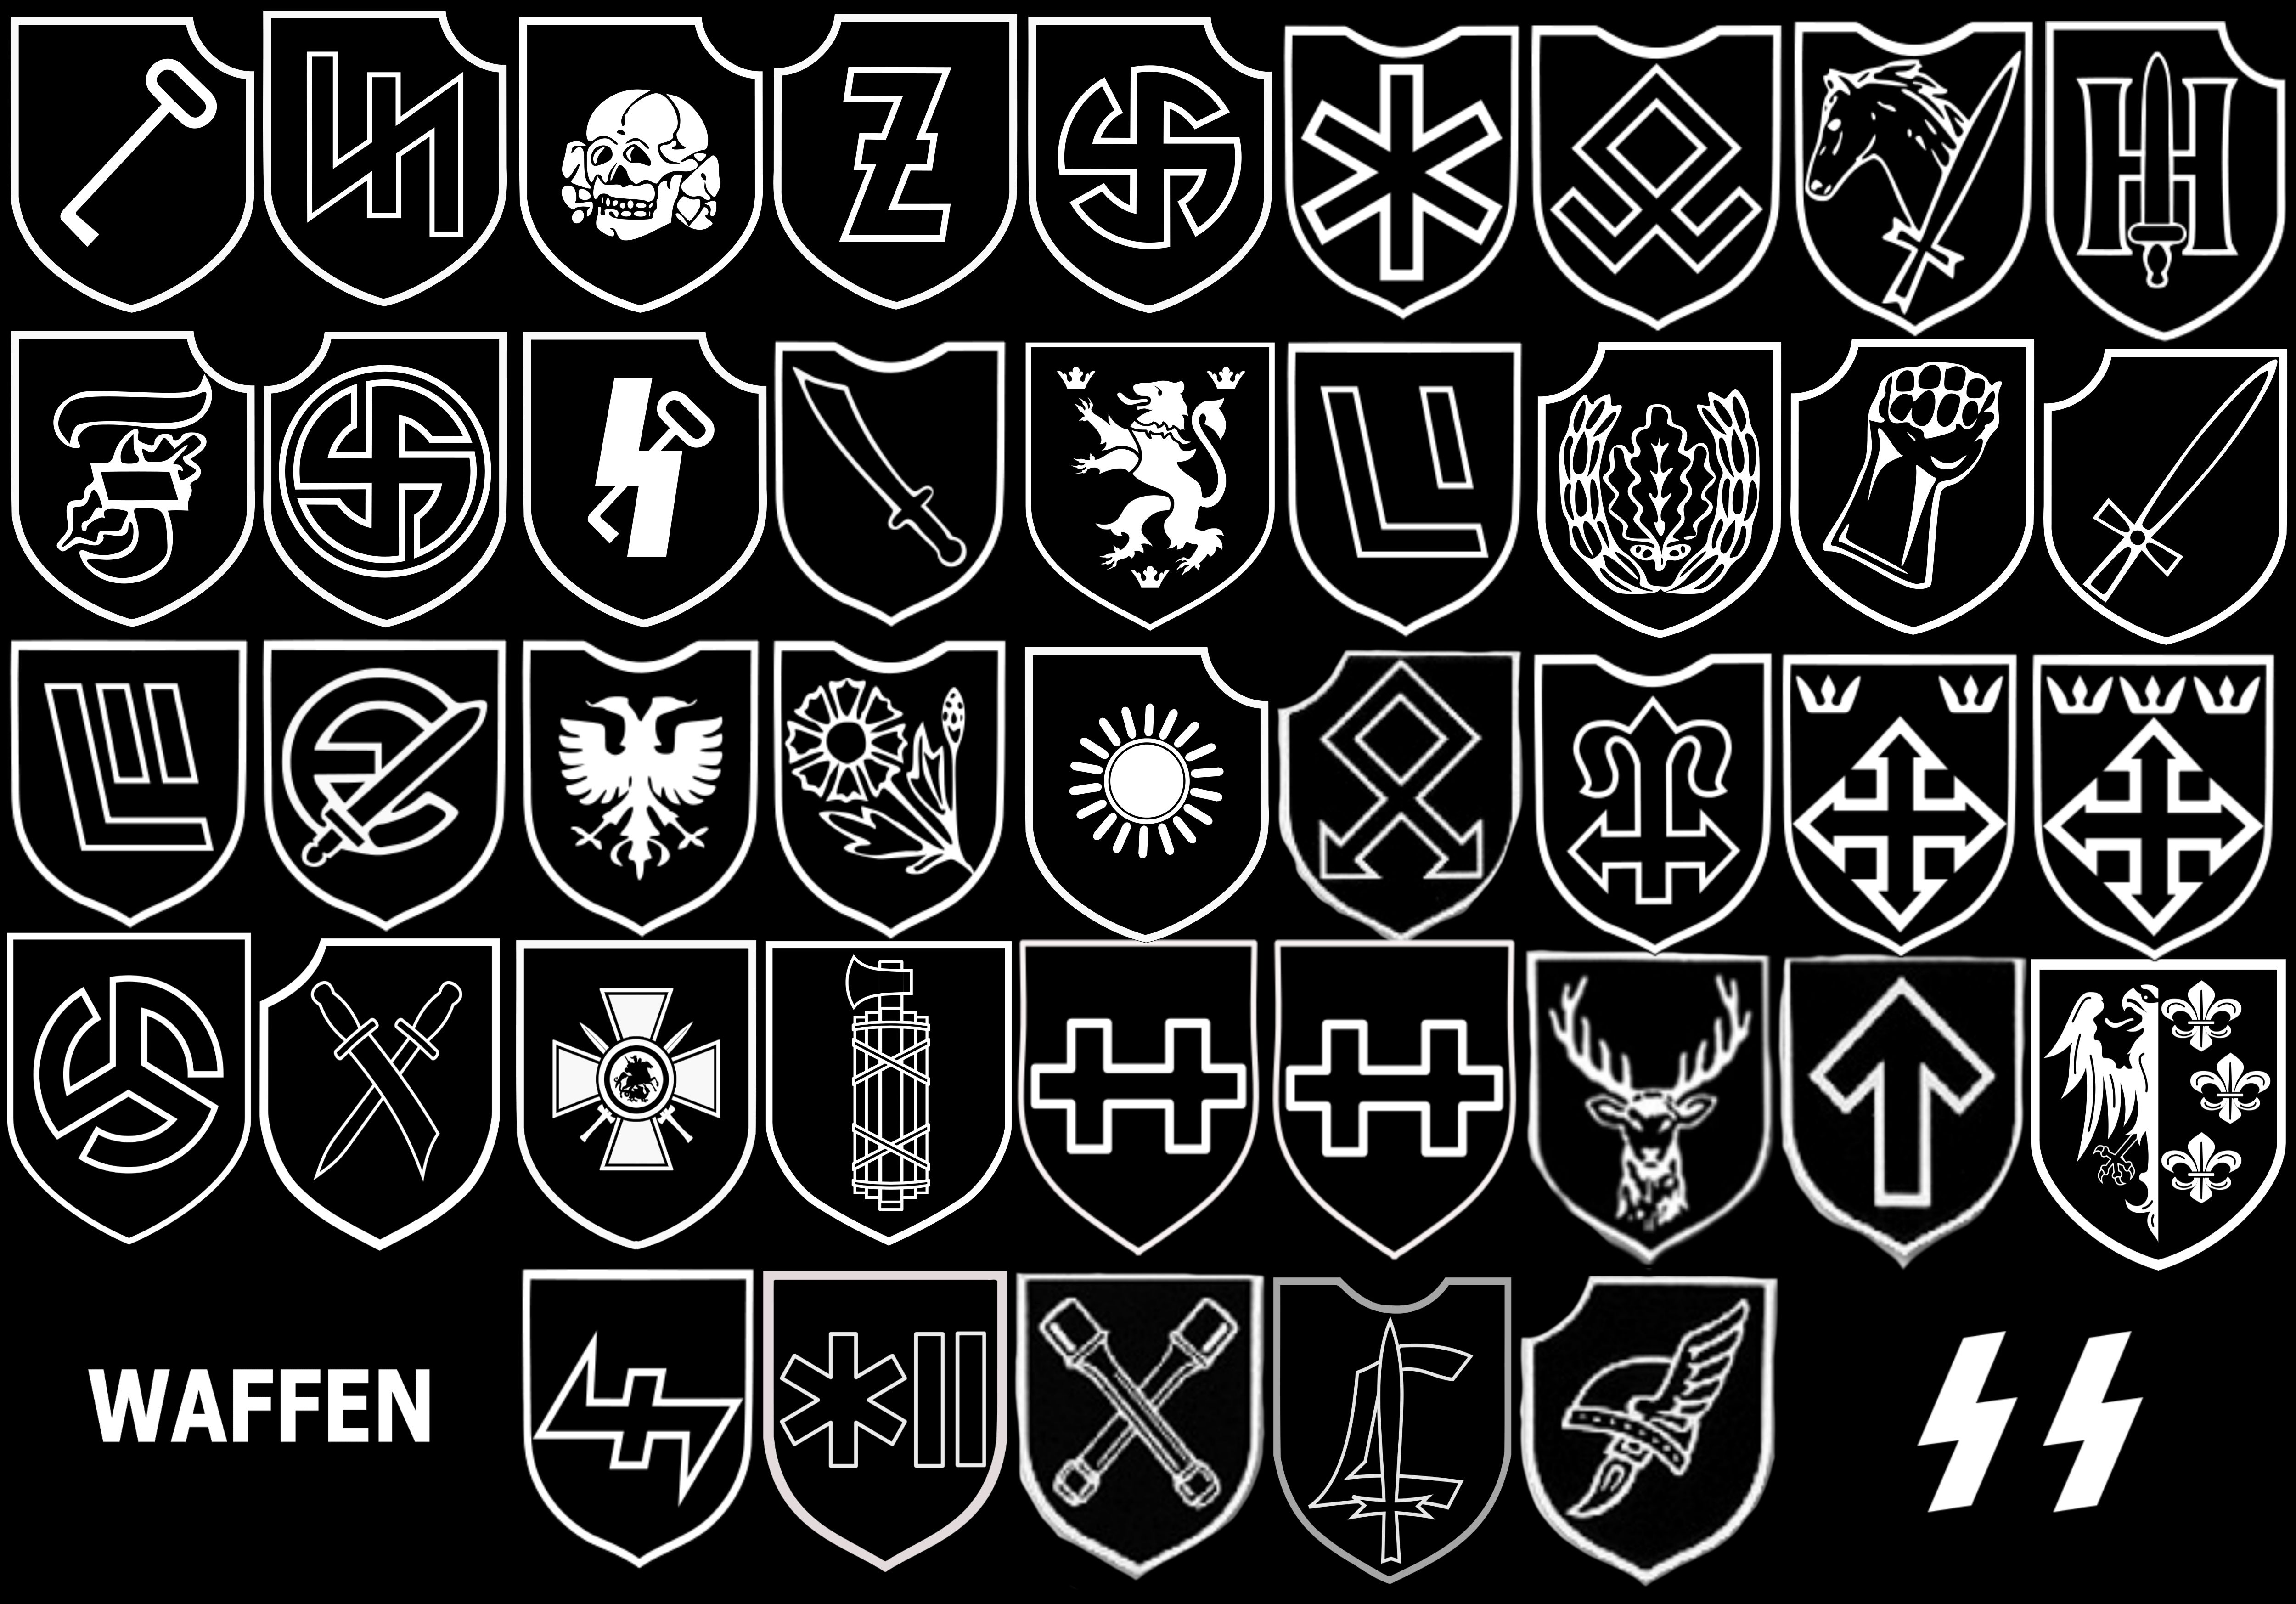 a compilation of all logos of the waffenss divisions